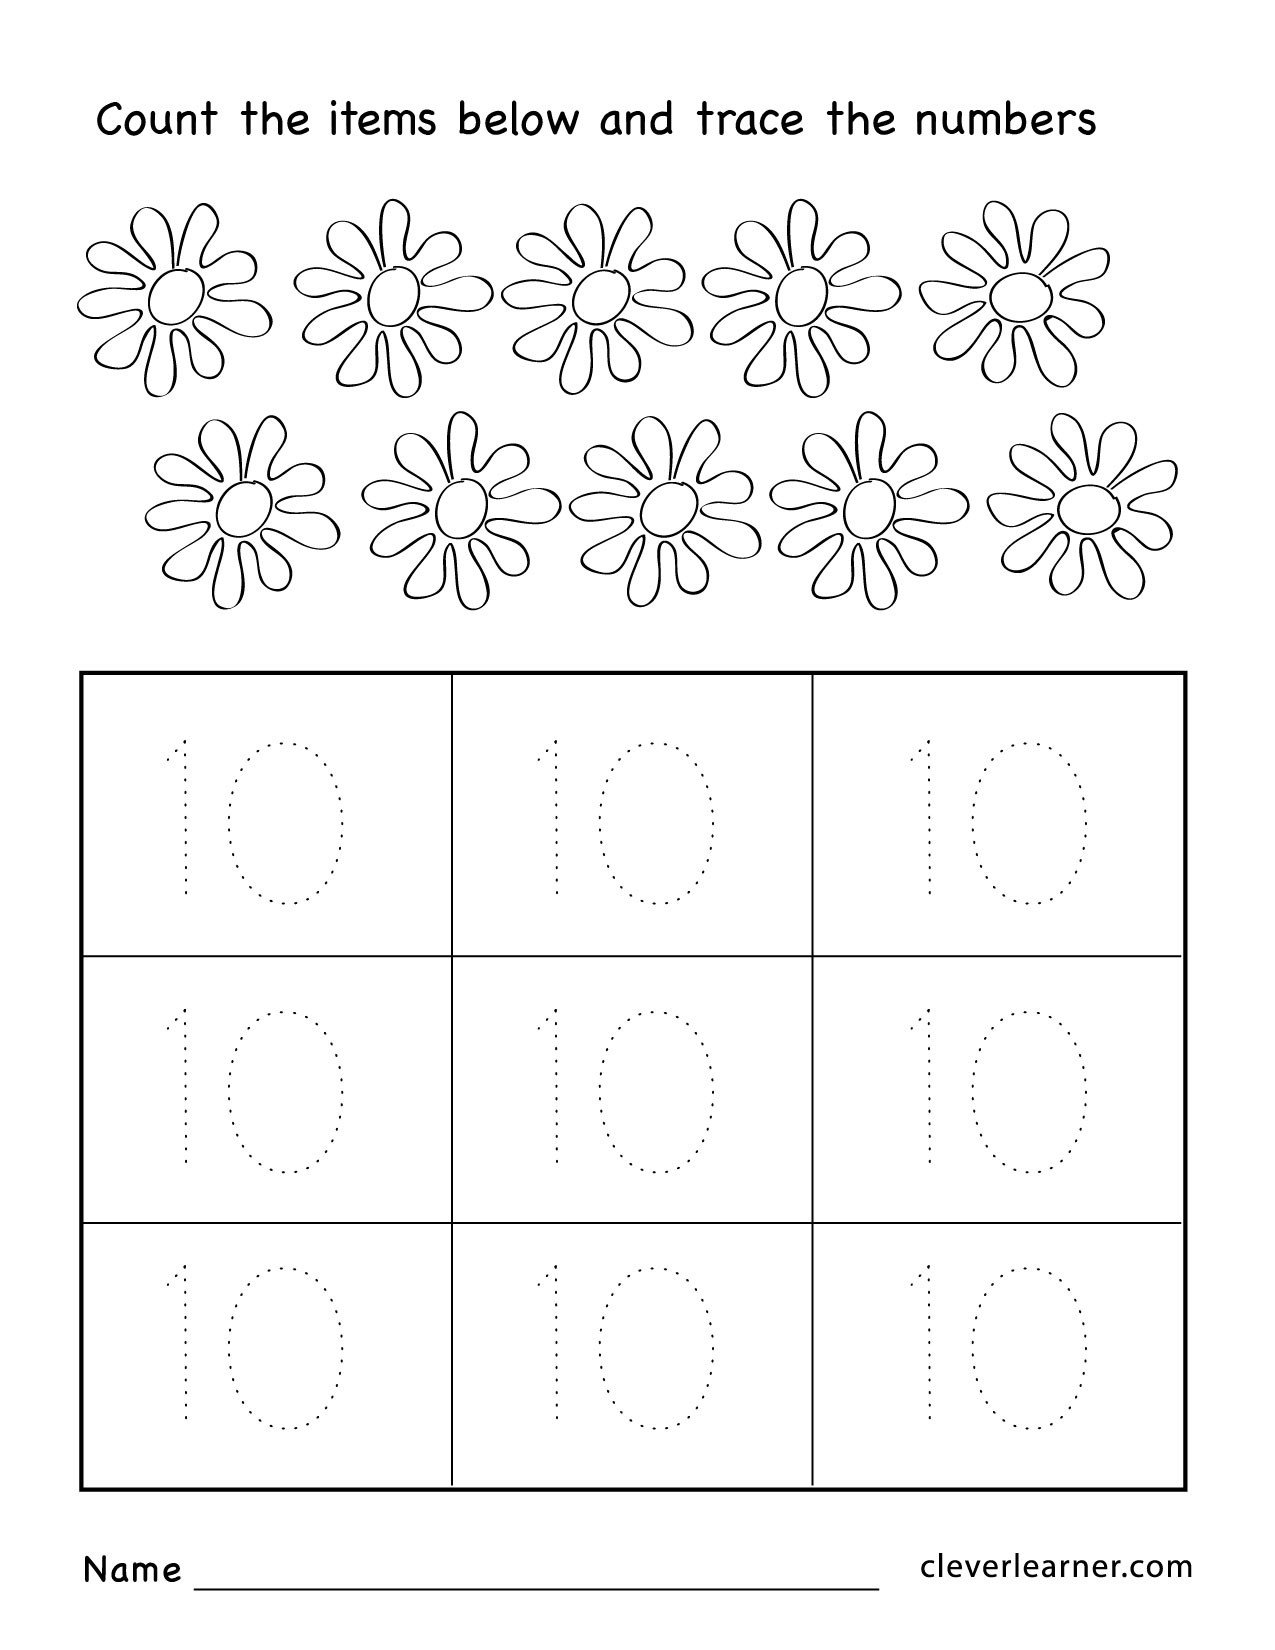 Number Tracing Worksheets for Kindergarten Number Ten Writing Counting and Identification Printable